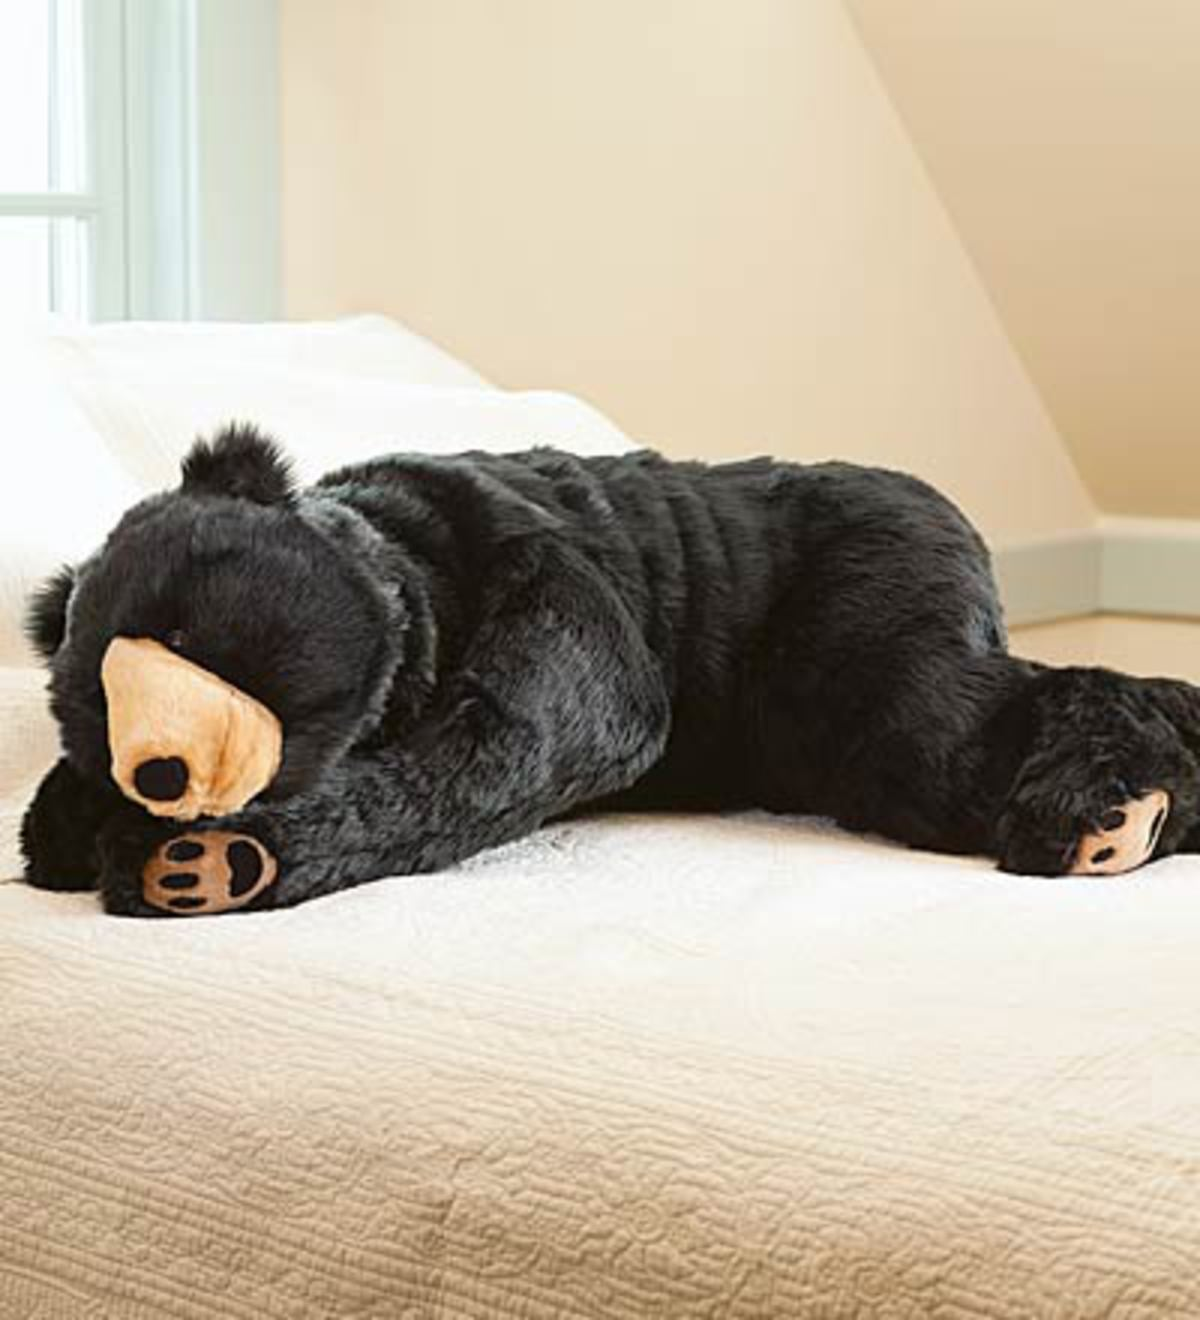 Bear Hug Body Pillow - Black